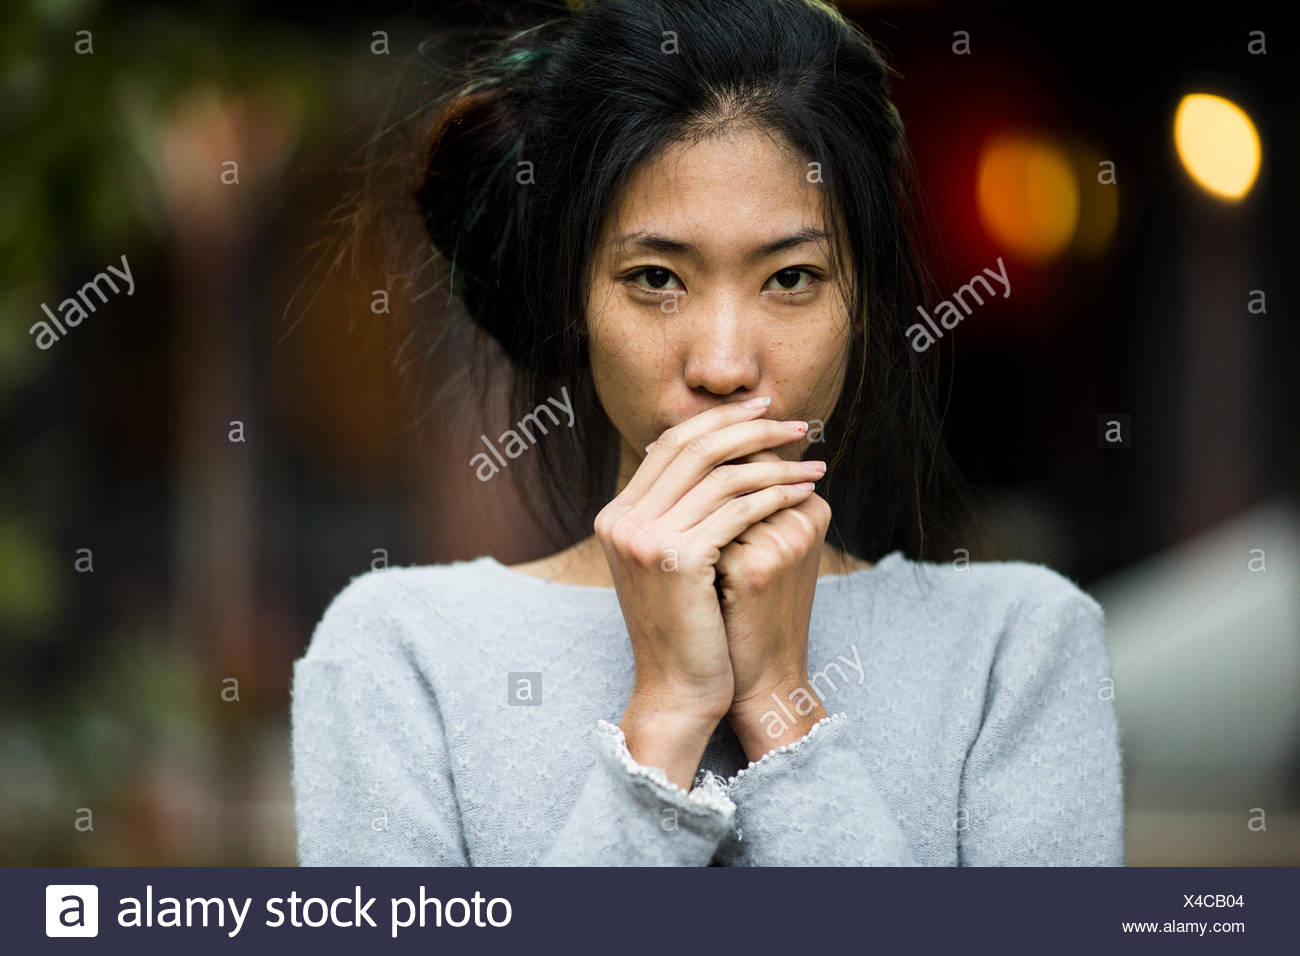 A young, pretty Asian woman in a garden in Hanoi, Vietnam. - Stock Image